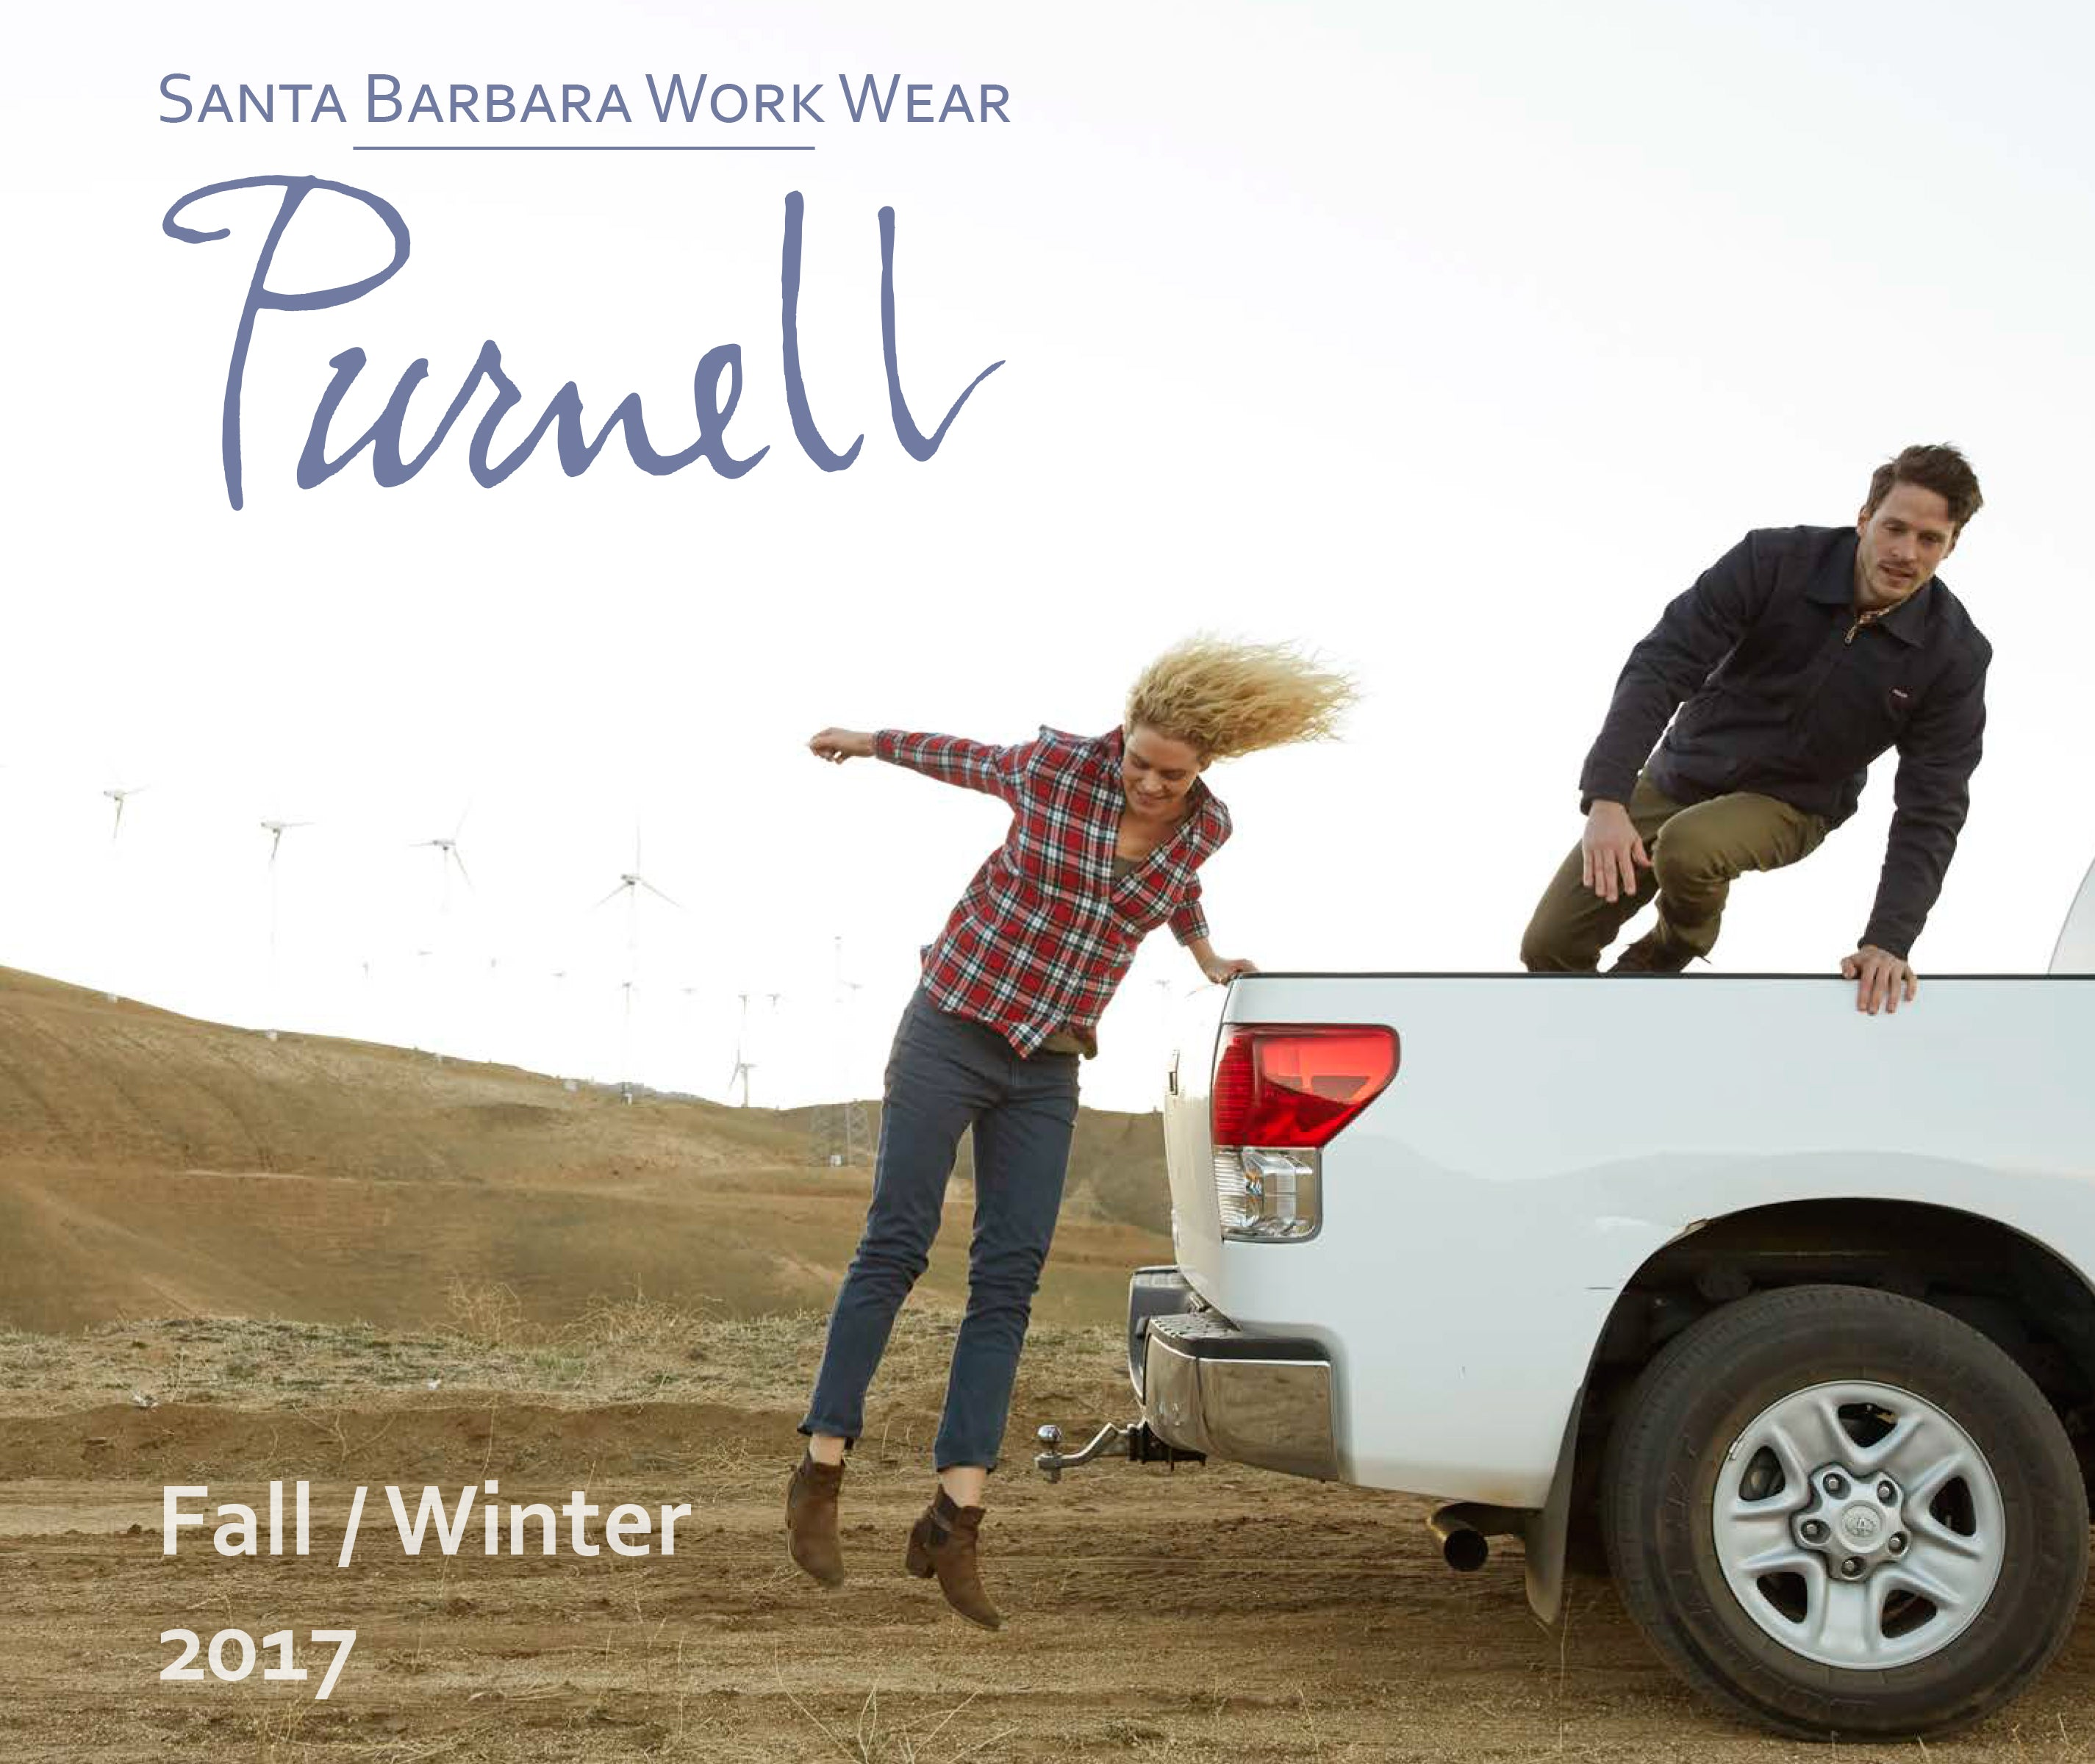 Purnell F17 Catalog E-Version: Click to view or download the PDF